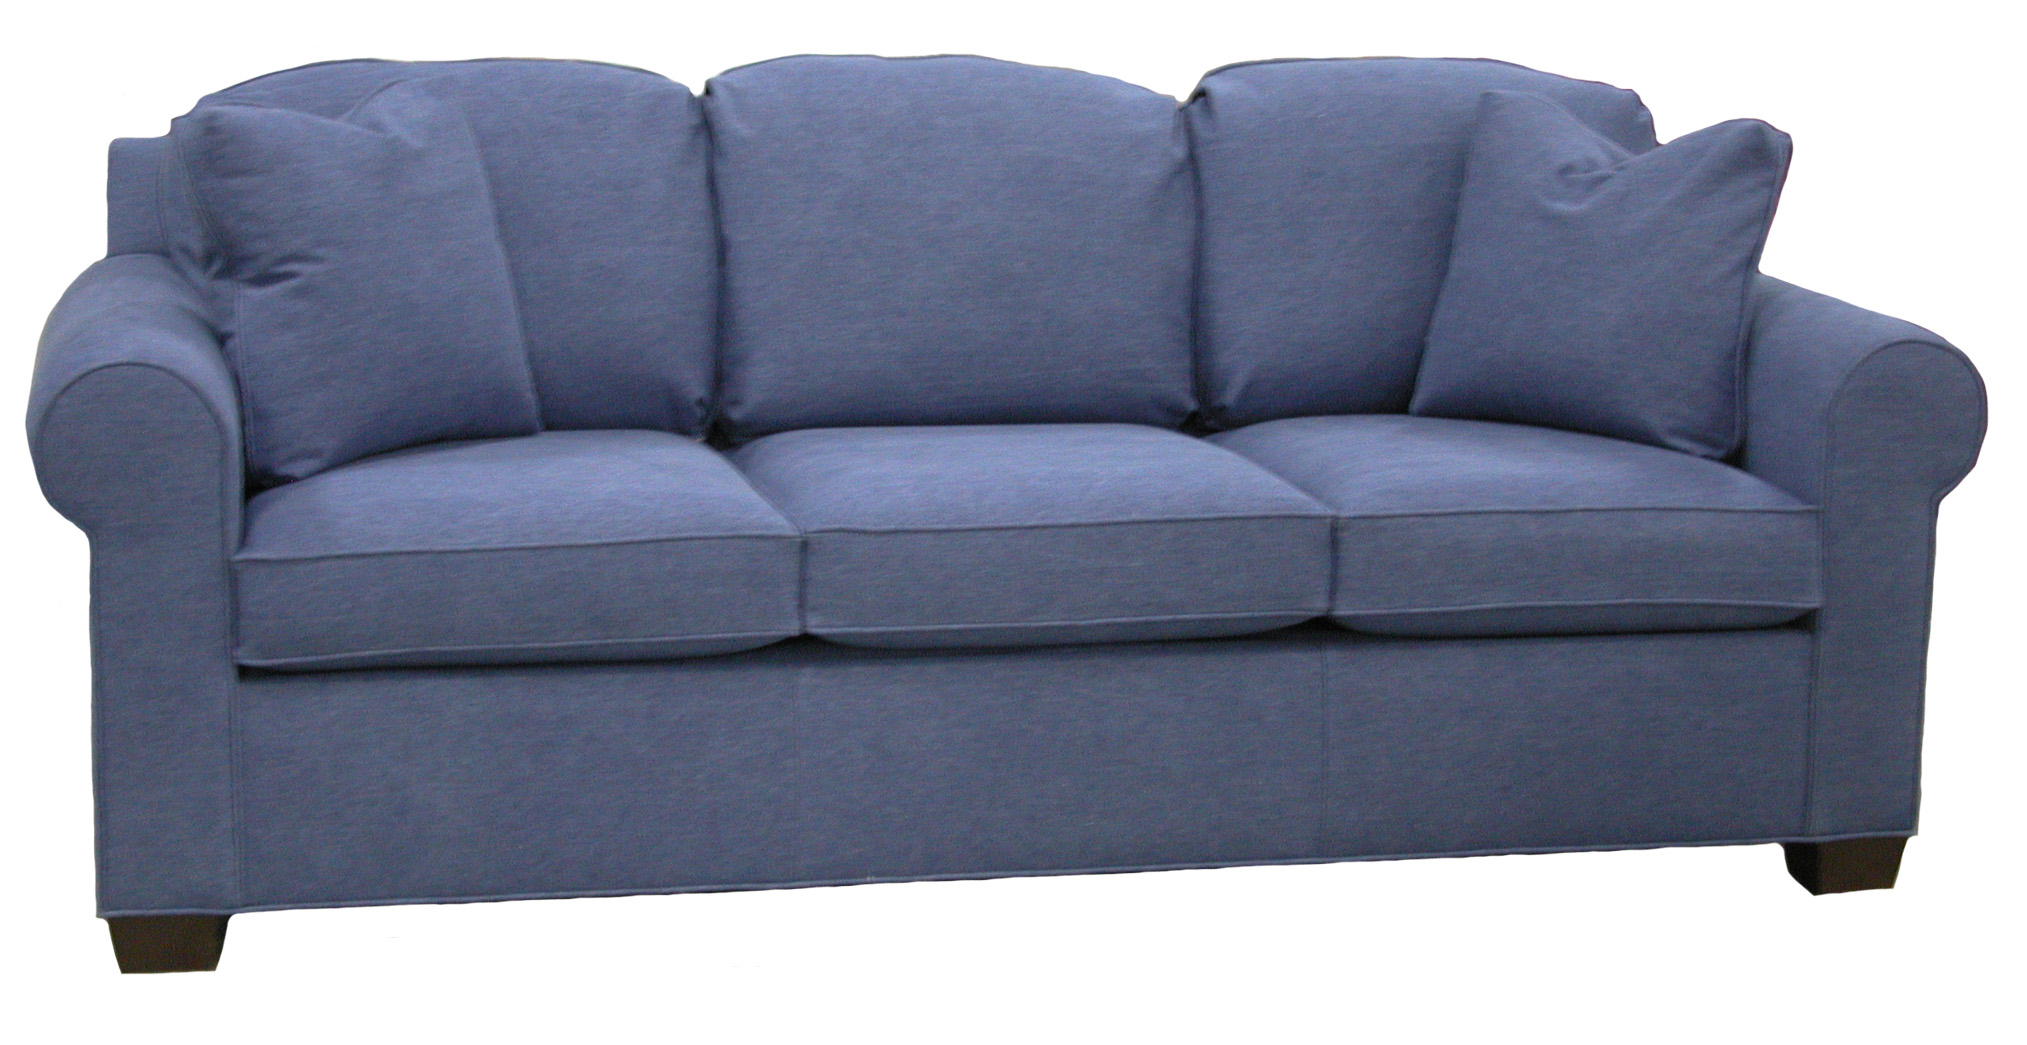 Harrison Queen Sleeper Sofa